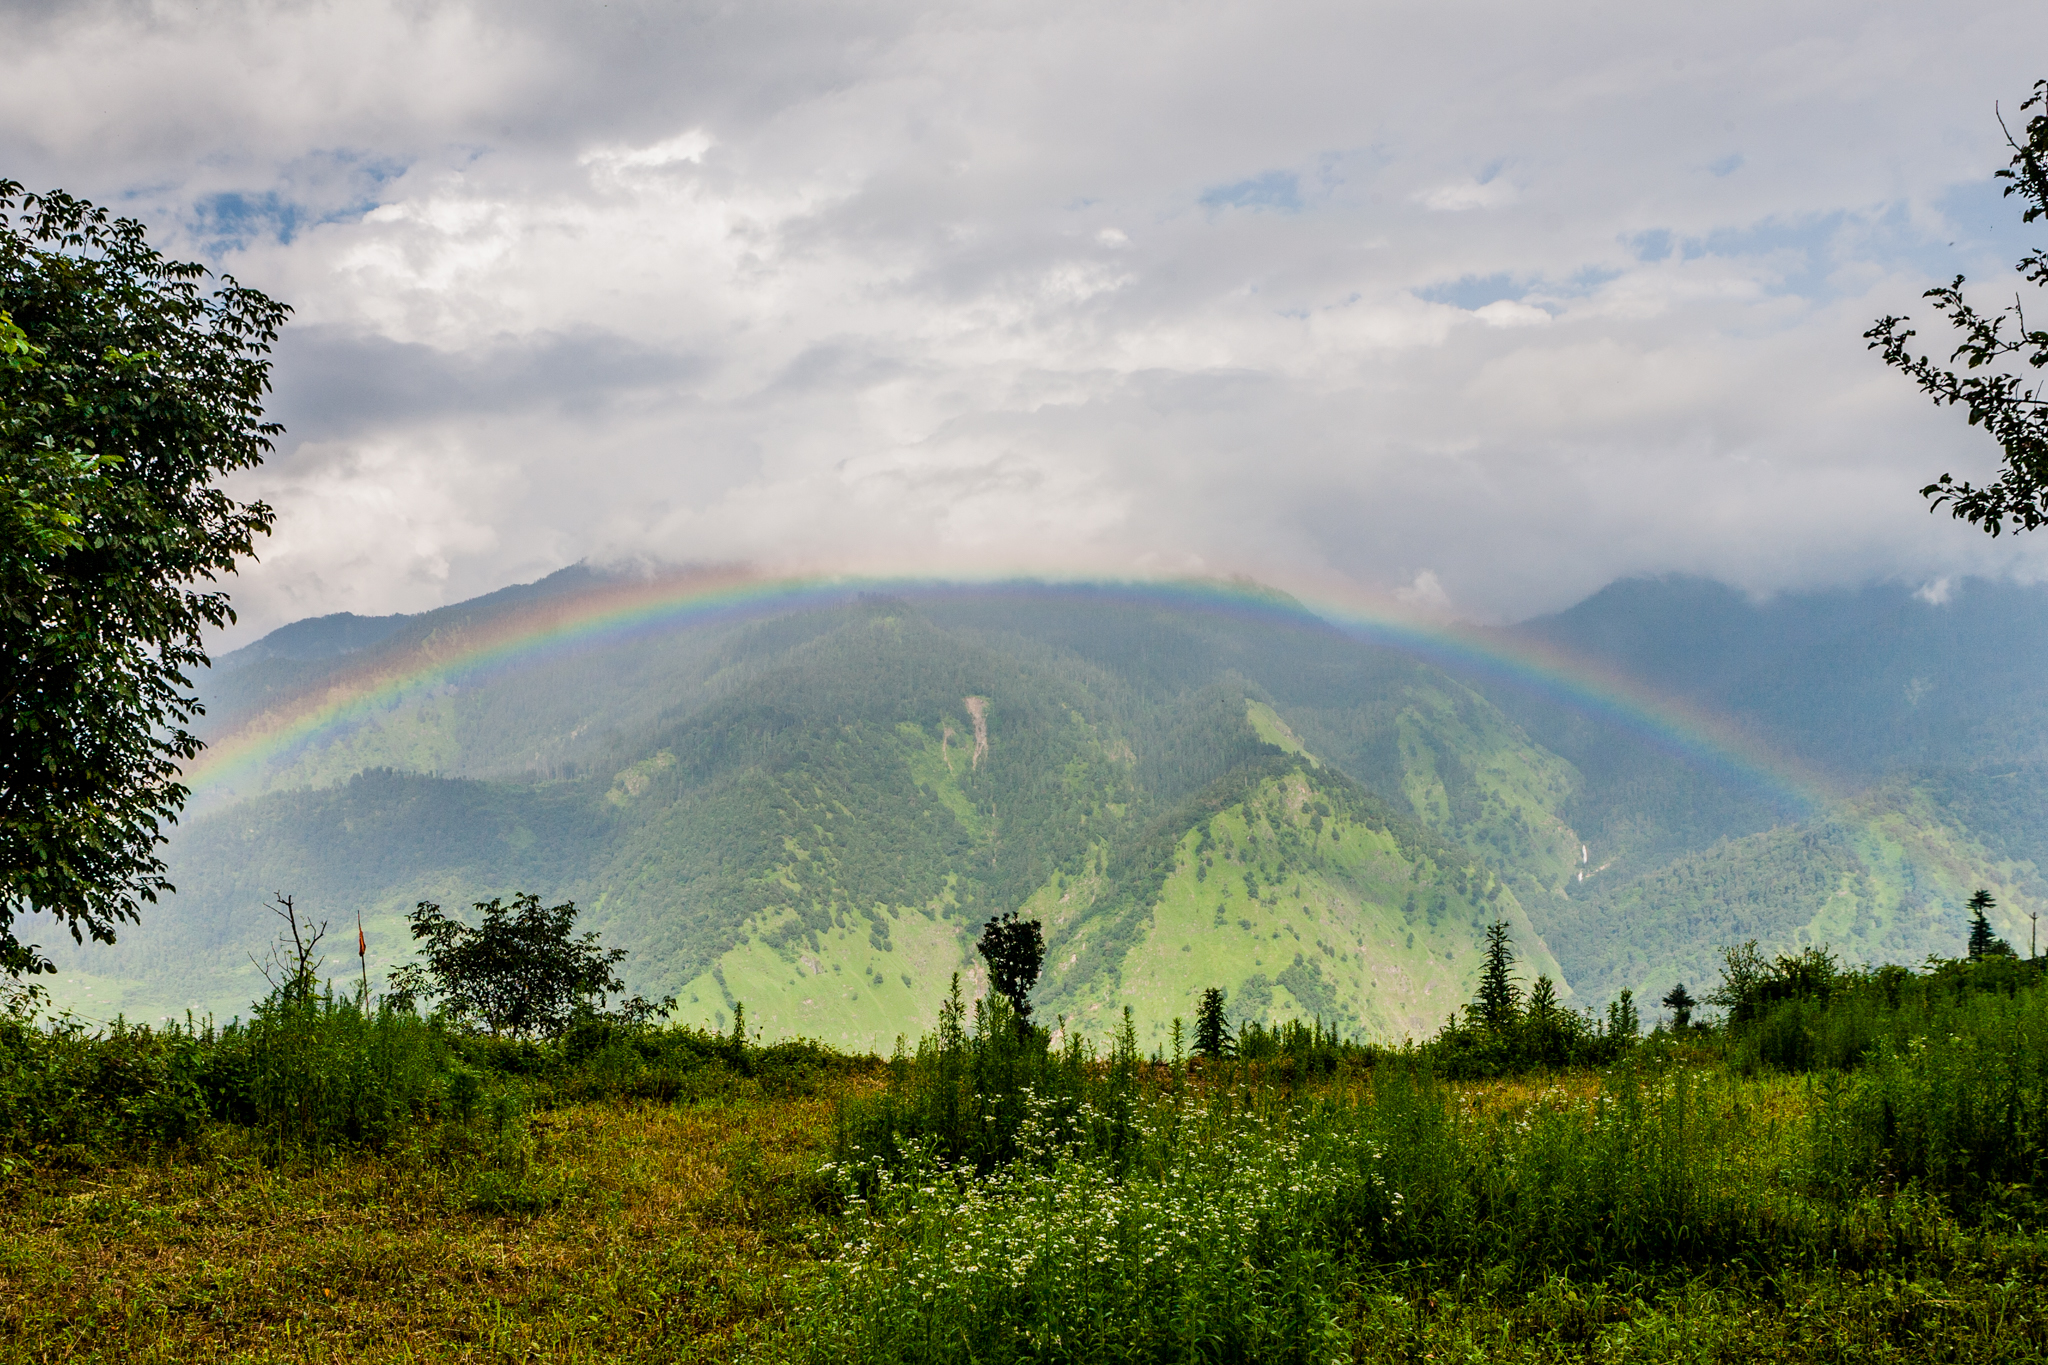 A rainbow greets us at The Goat Village, Raithal surrounded by the Himalayas